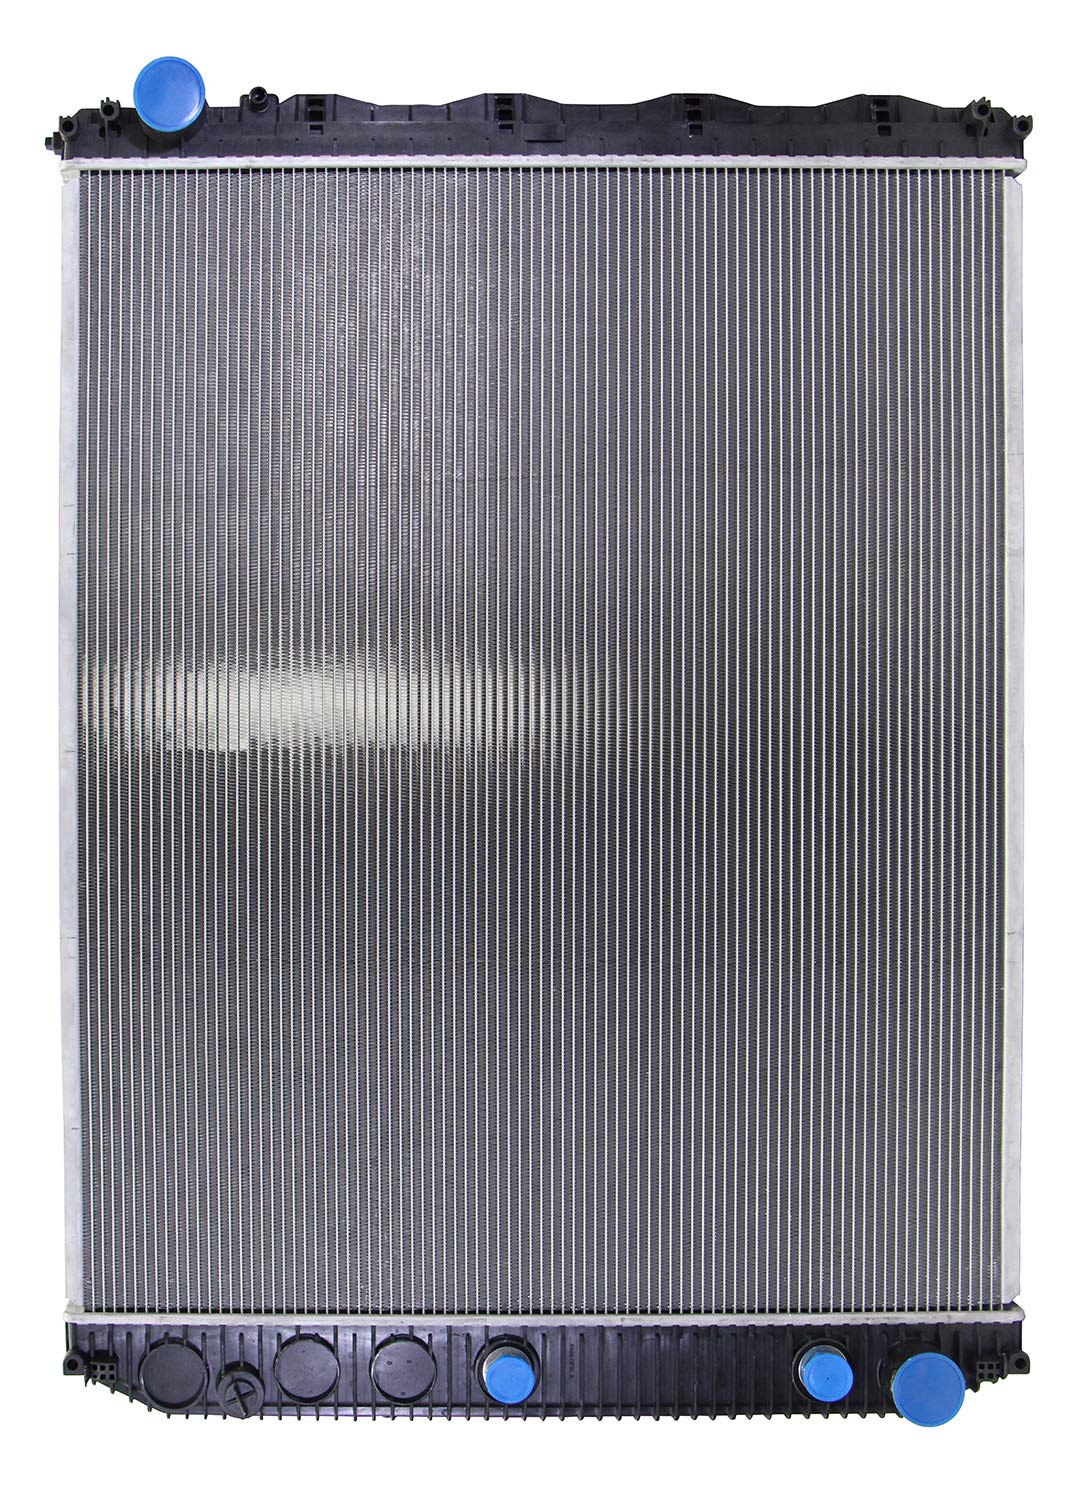 New Replacement Radiator For Volvo VNL, VNM, CT, CV and Mack Vision, CXU Trucks